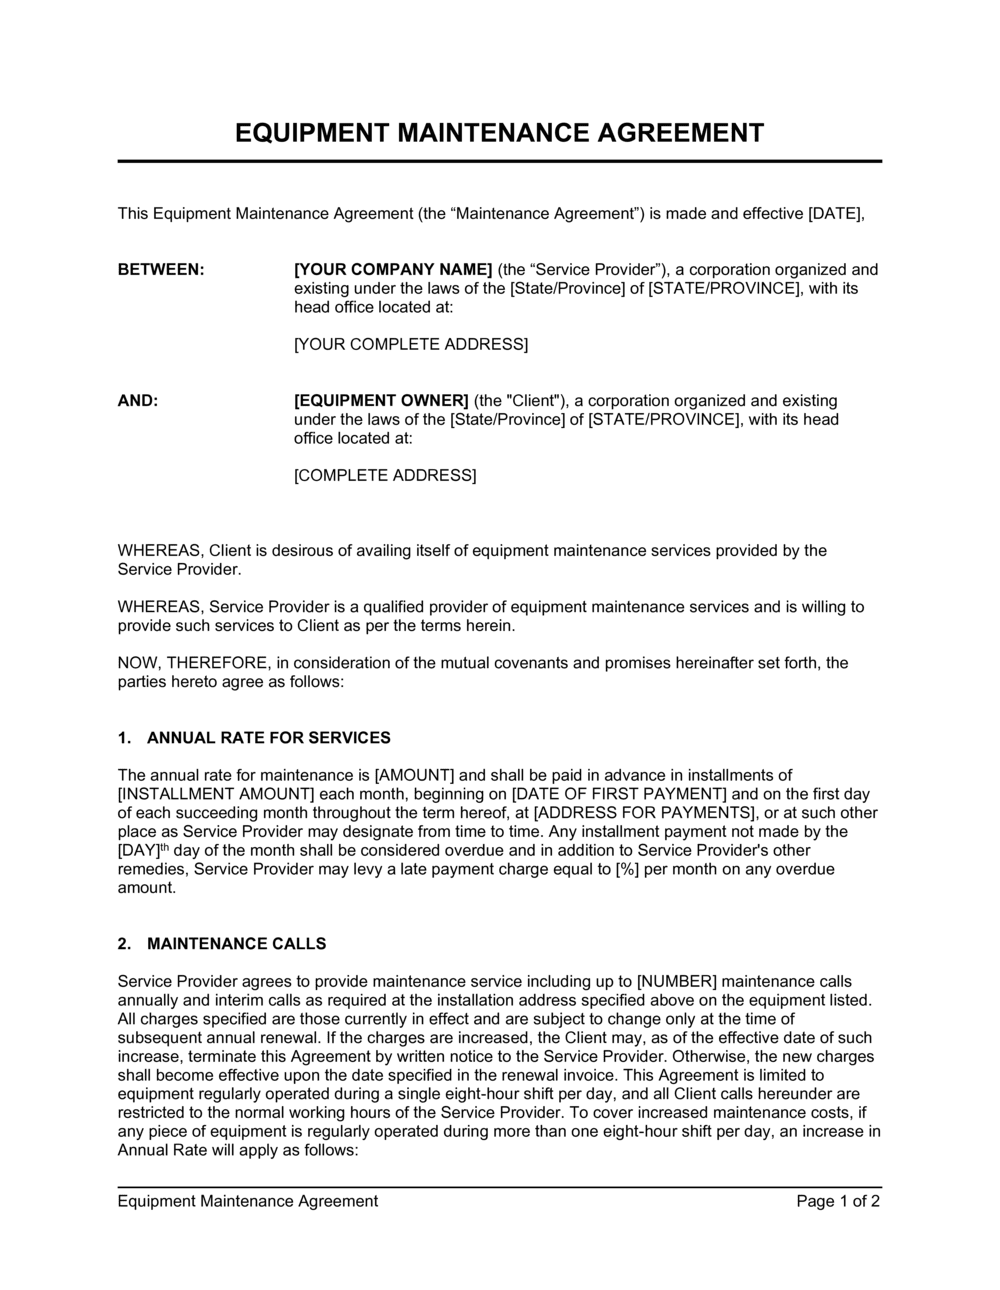 Equipment Maintenance Agreement Template By Business In A Box